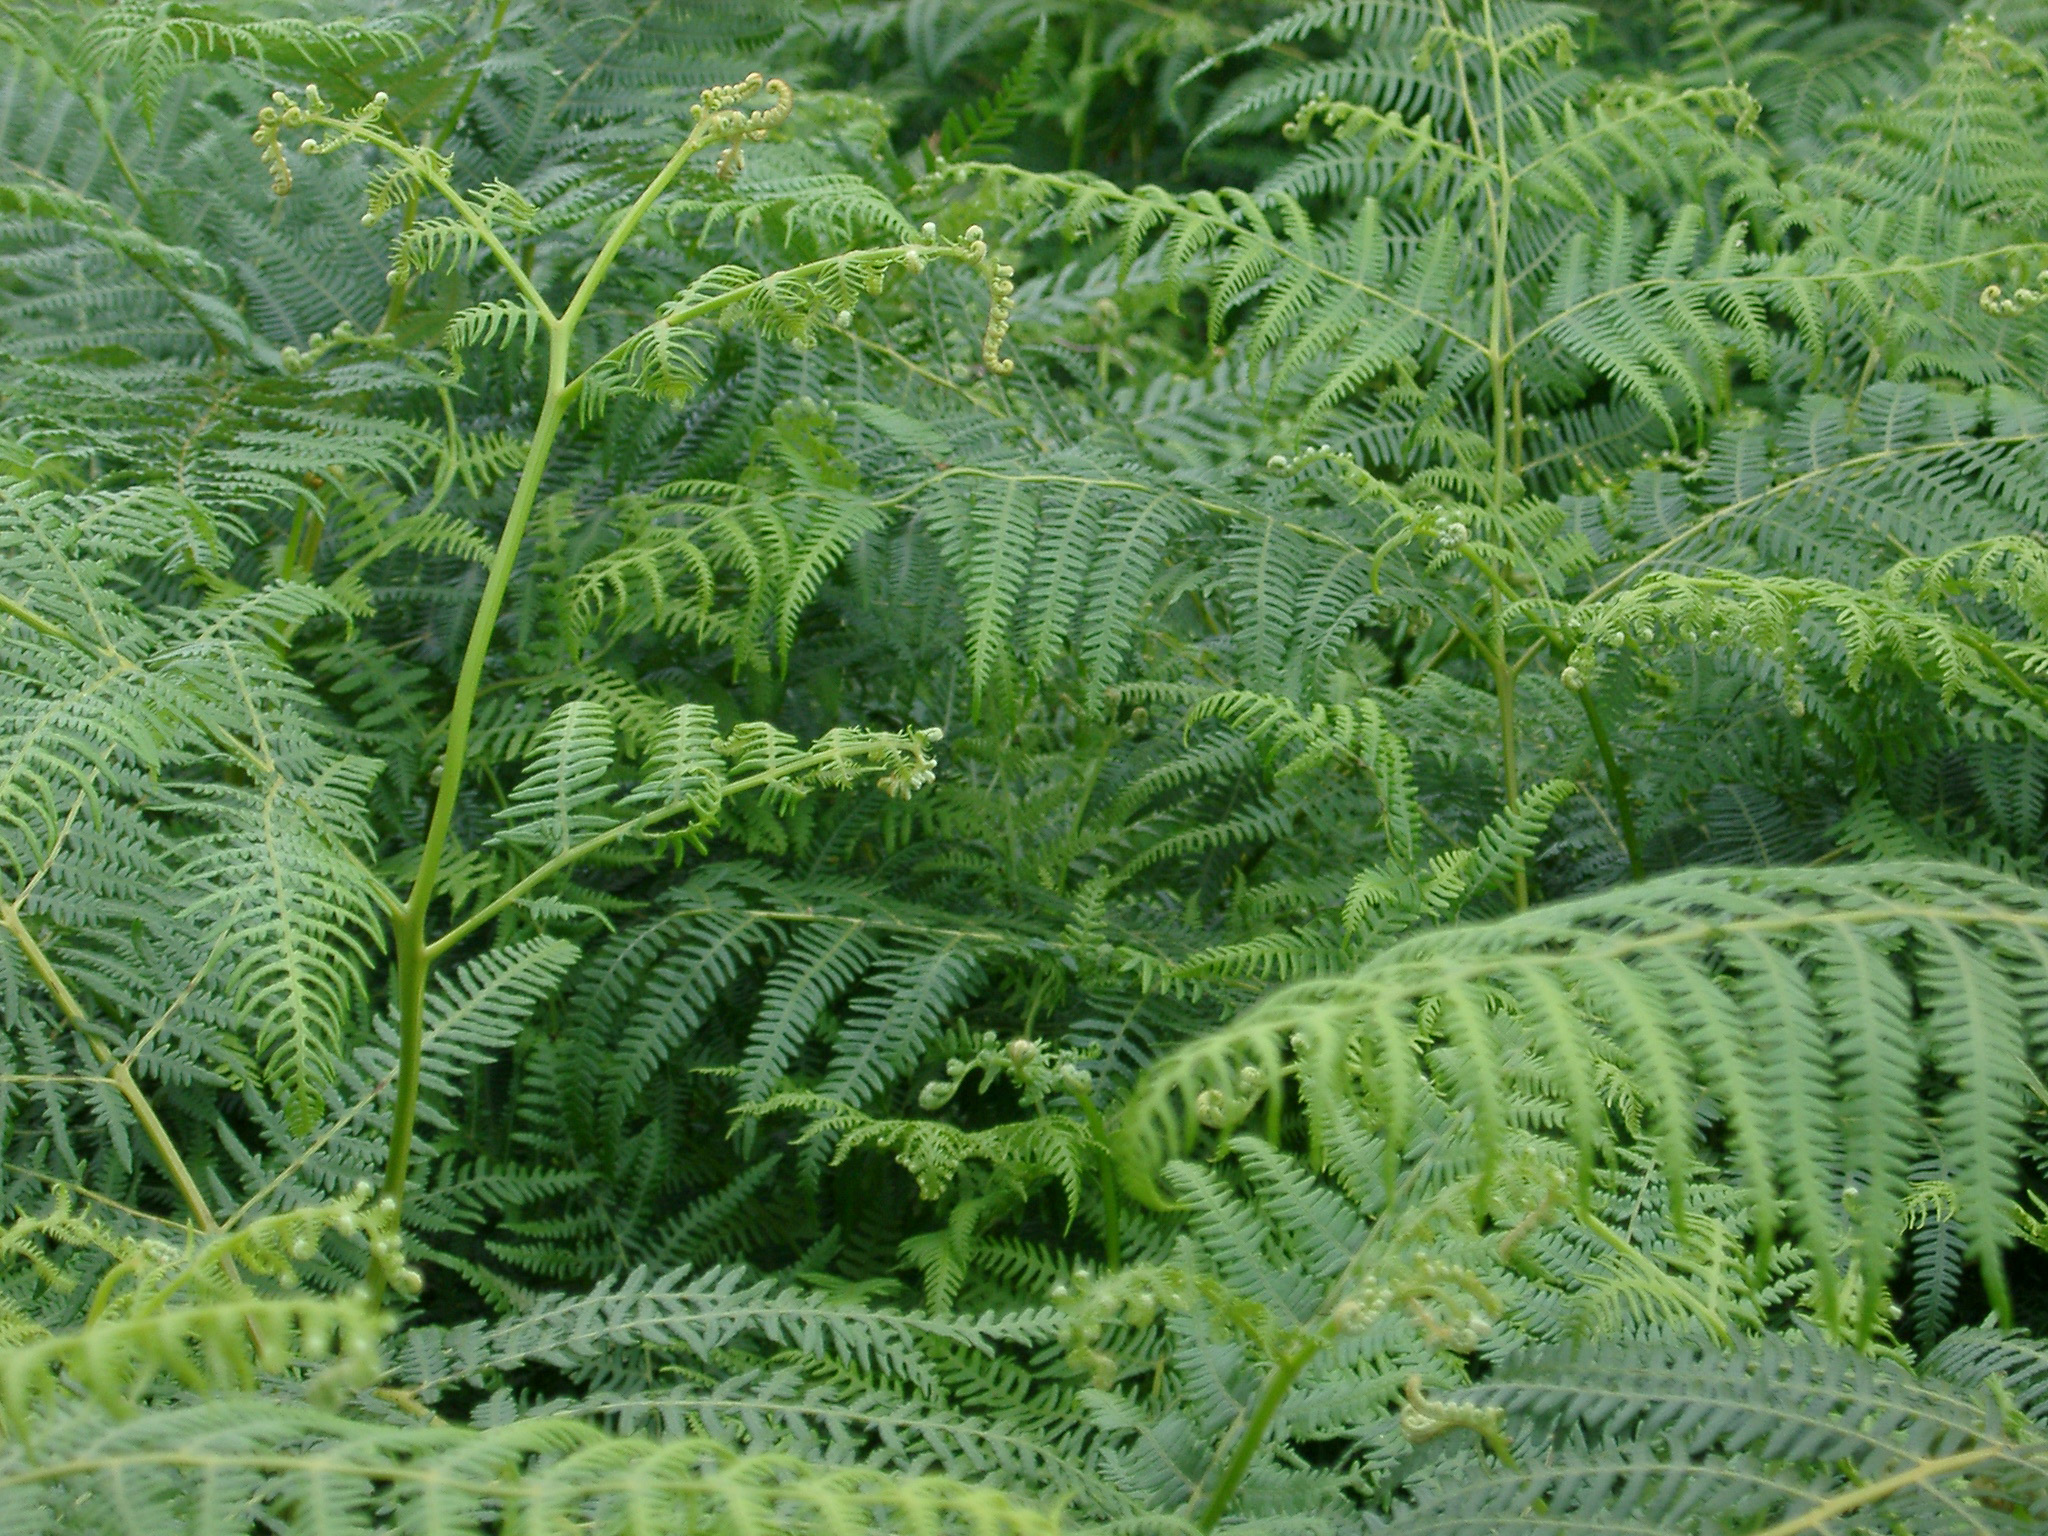 Background texture of fresh green bracken fronds growing in welsh countryside, close up detail of the new growth